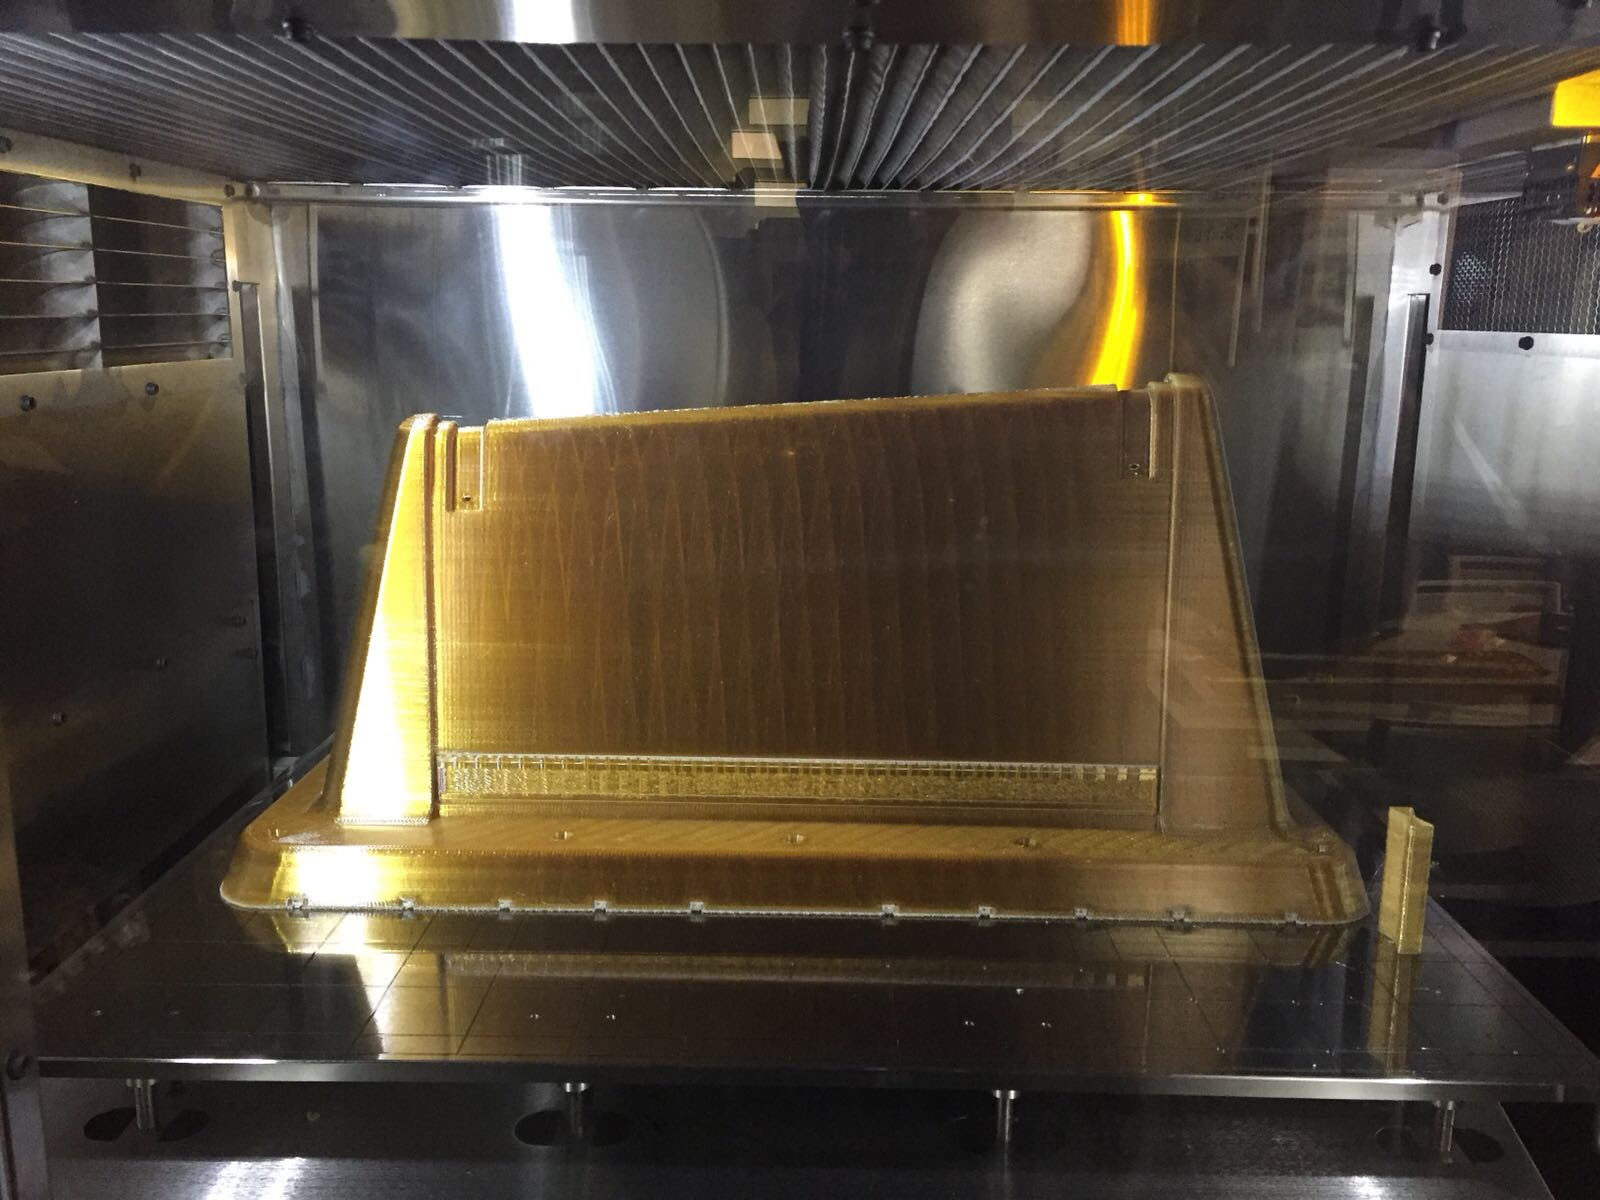 Preform tool produced with the Stratasys F900 Production System using ULTEM™ 1010 resin.